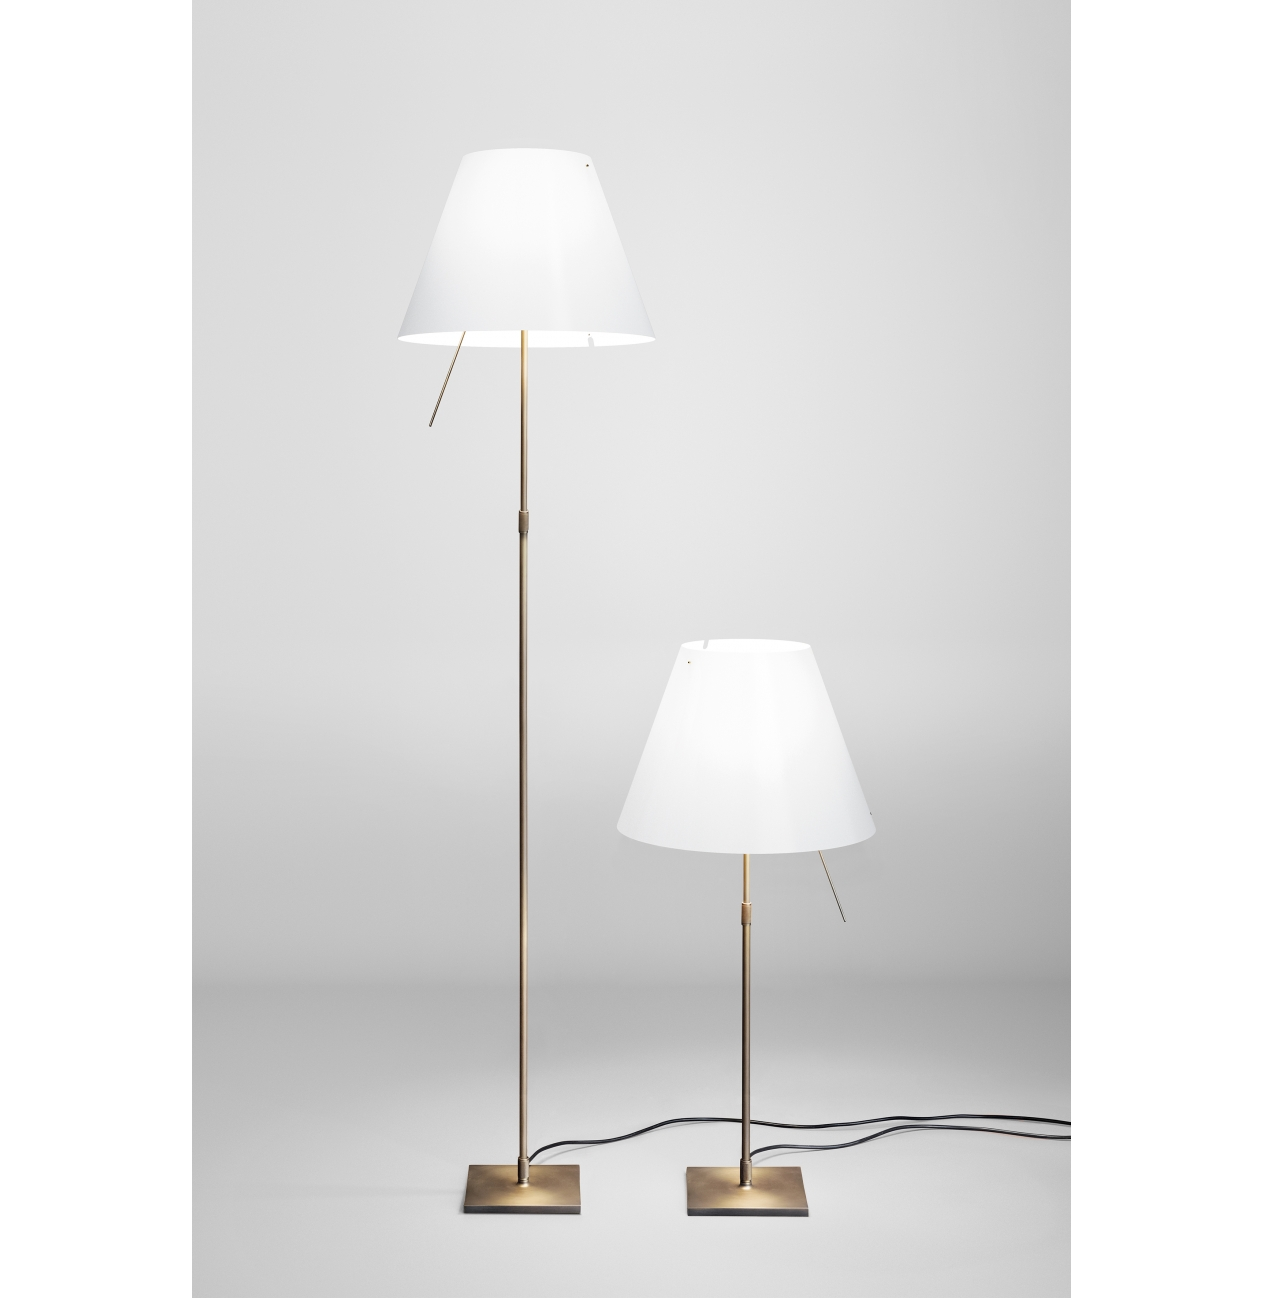 Vloerlamp Costanza Brons - Limited Edition -